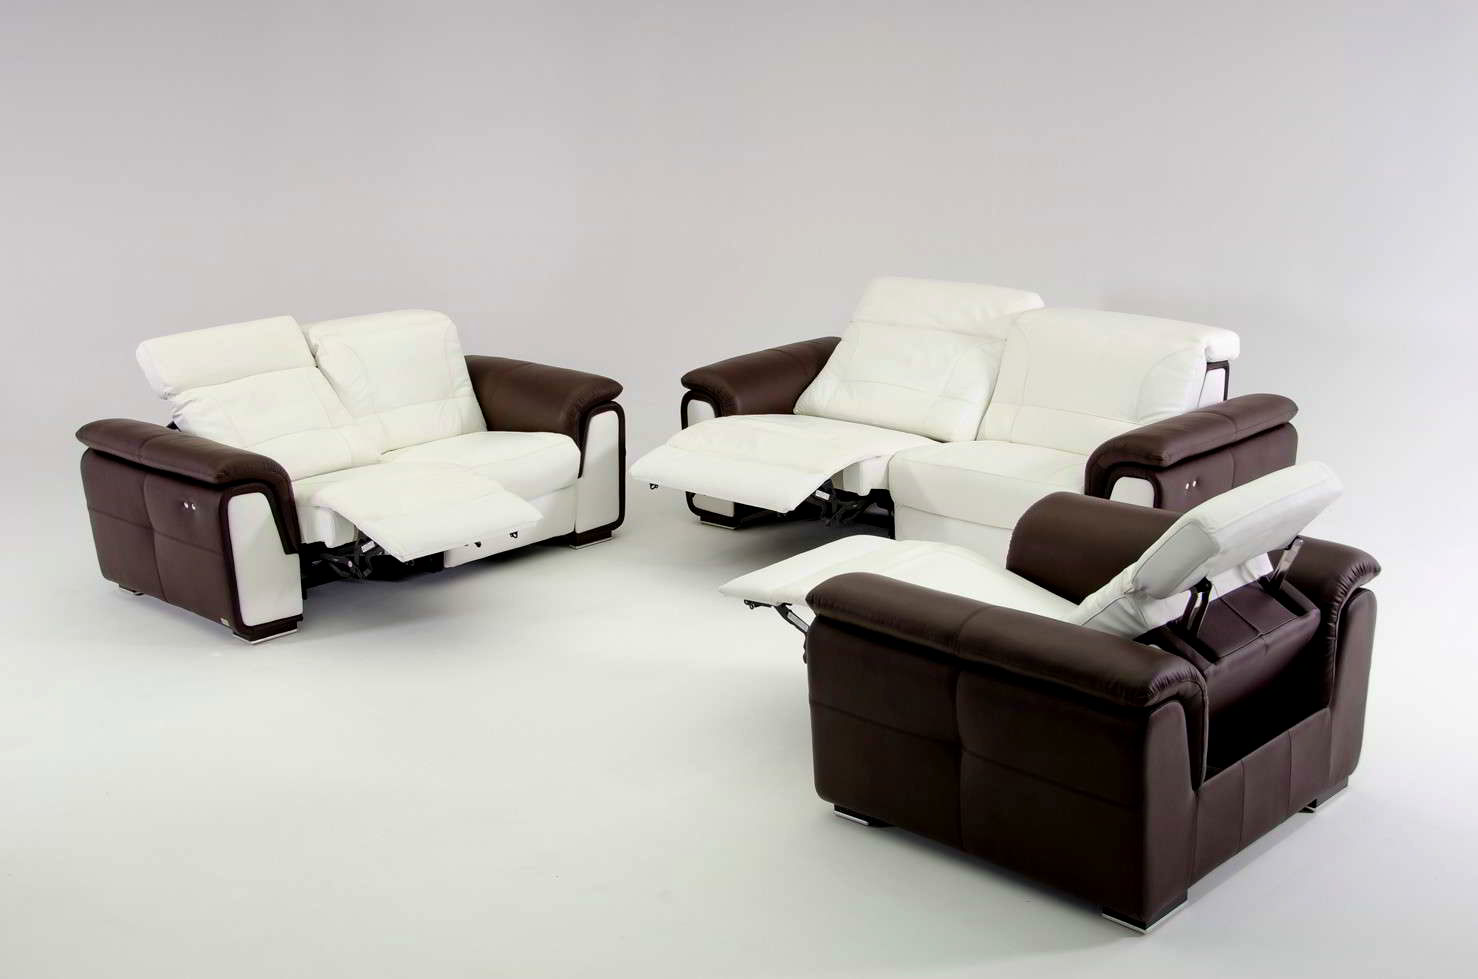 finest cheap sofa beds online-Best Cheap sofa Beds Plan